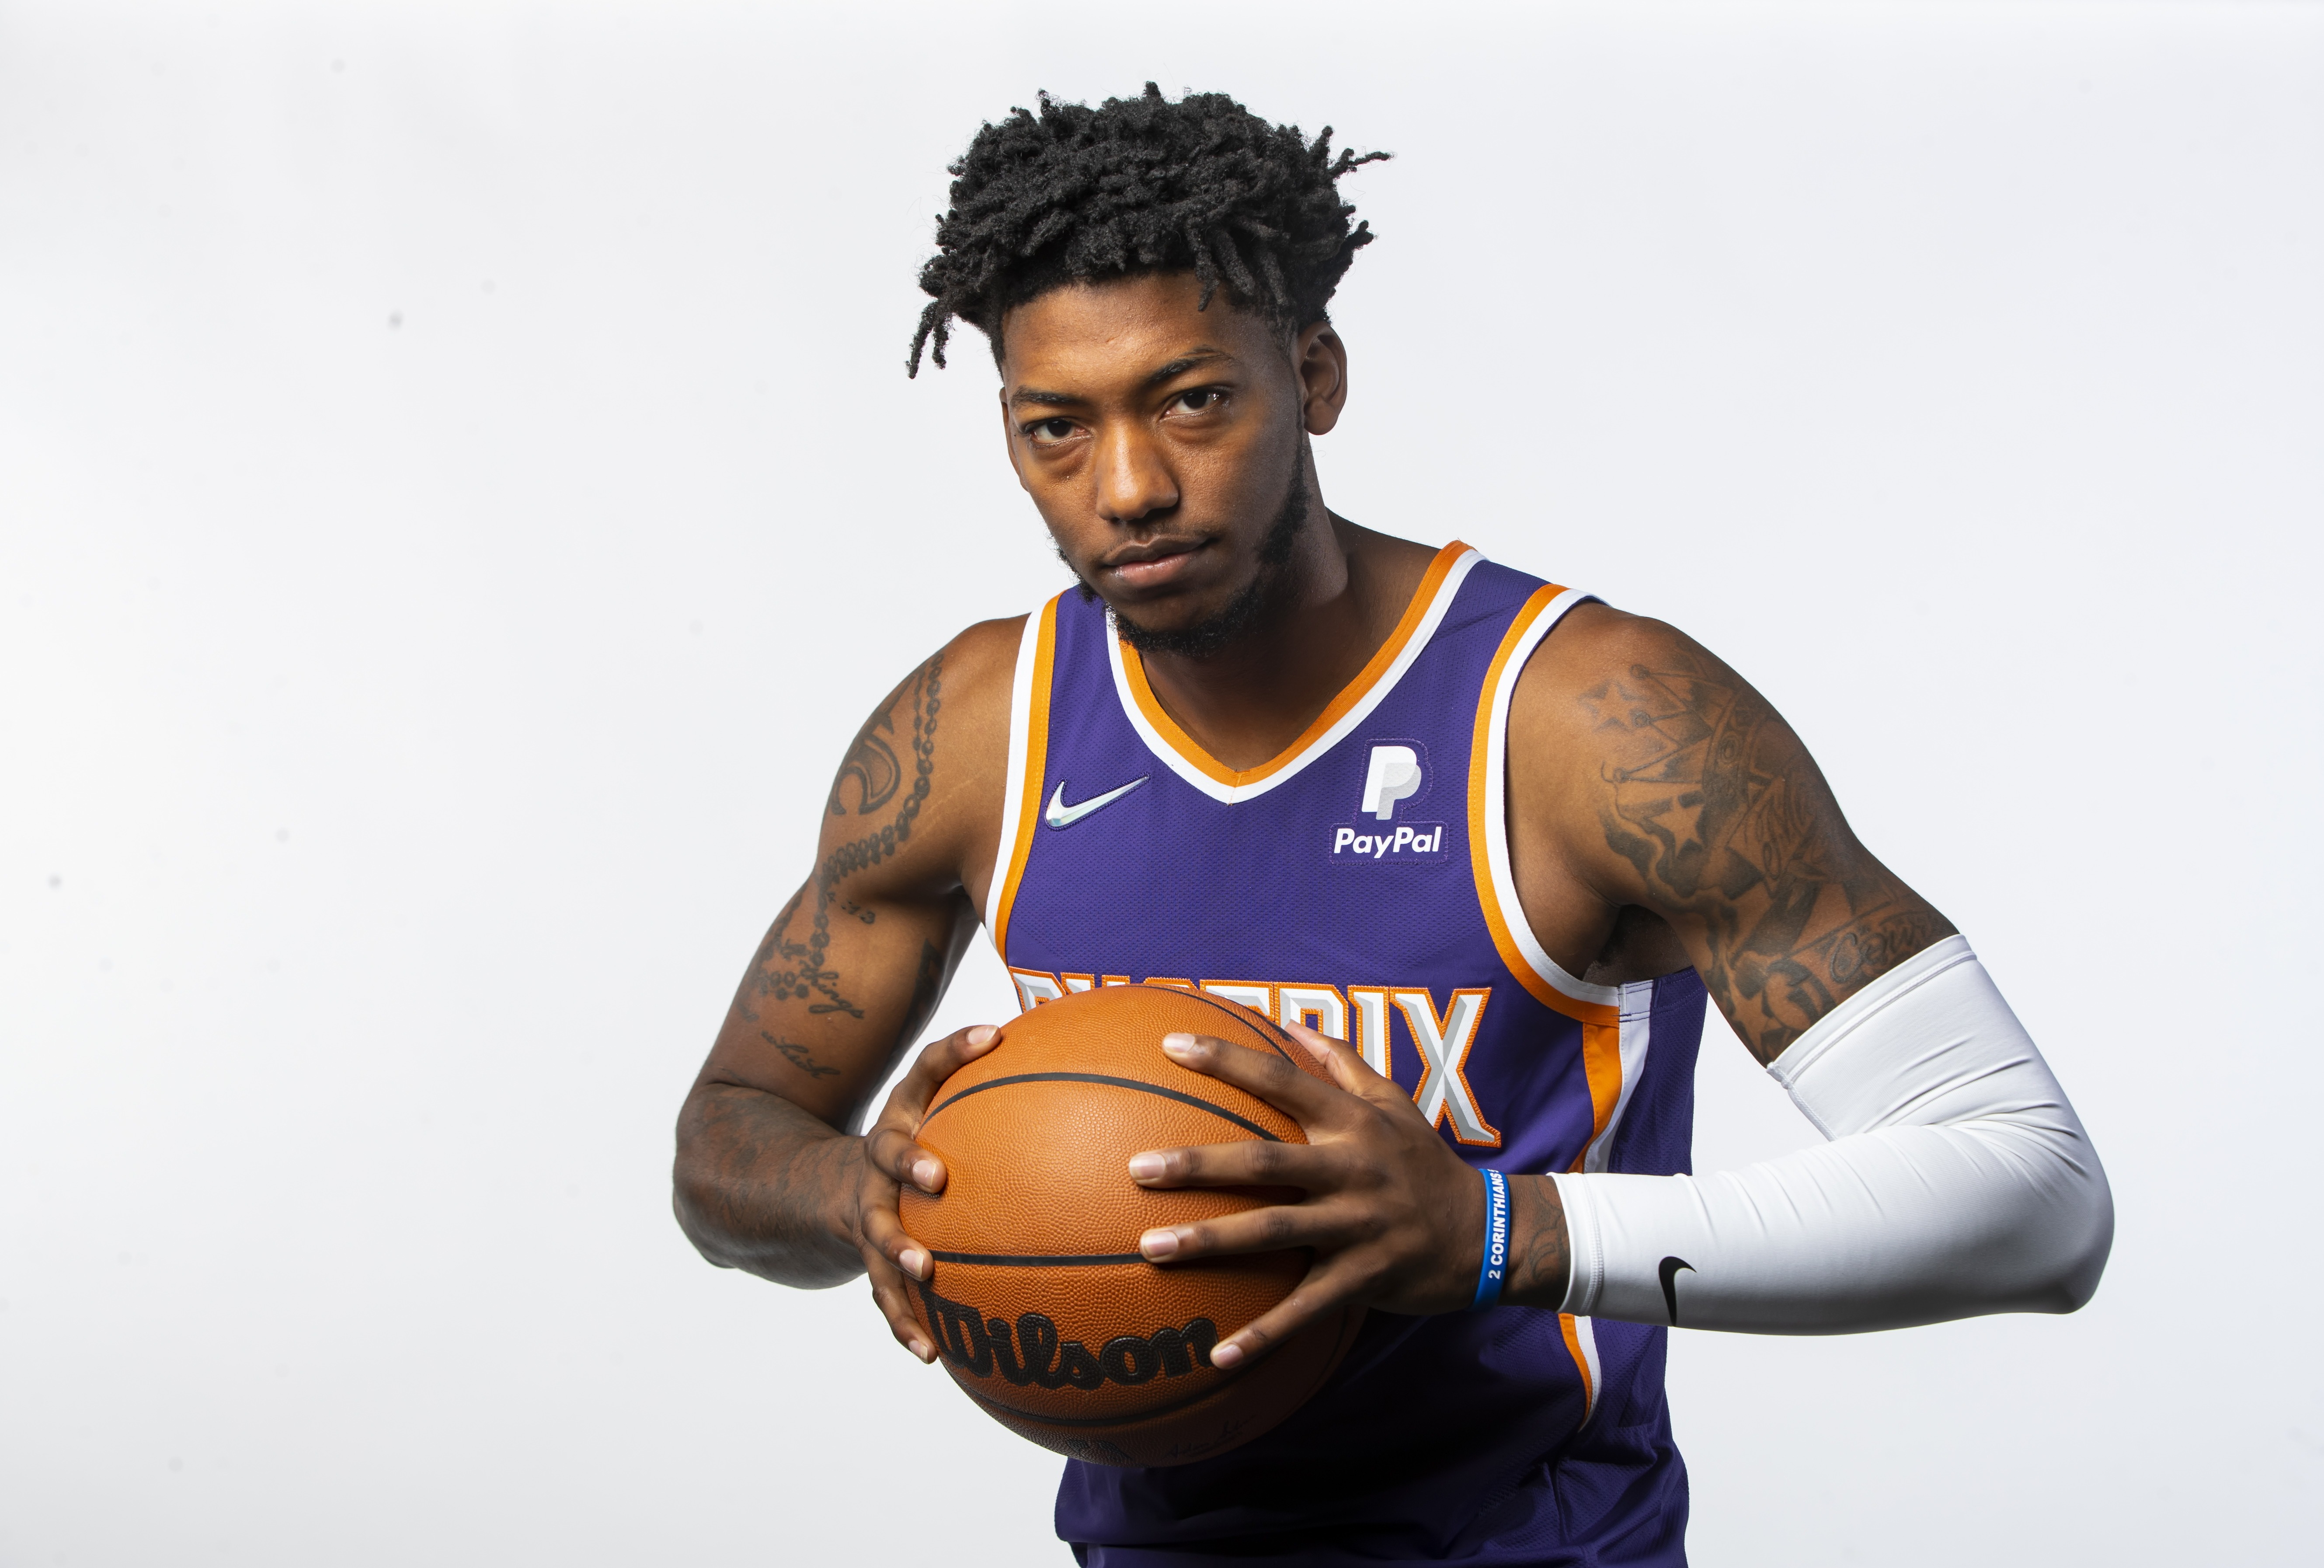 Elfrid Payton will be embracing a very different role on a very different team when he rejoins the Phoenix Suns in 2021-22